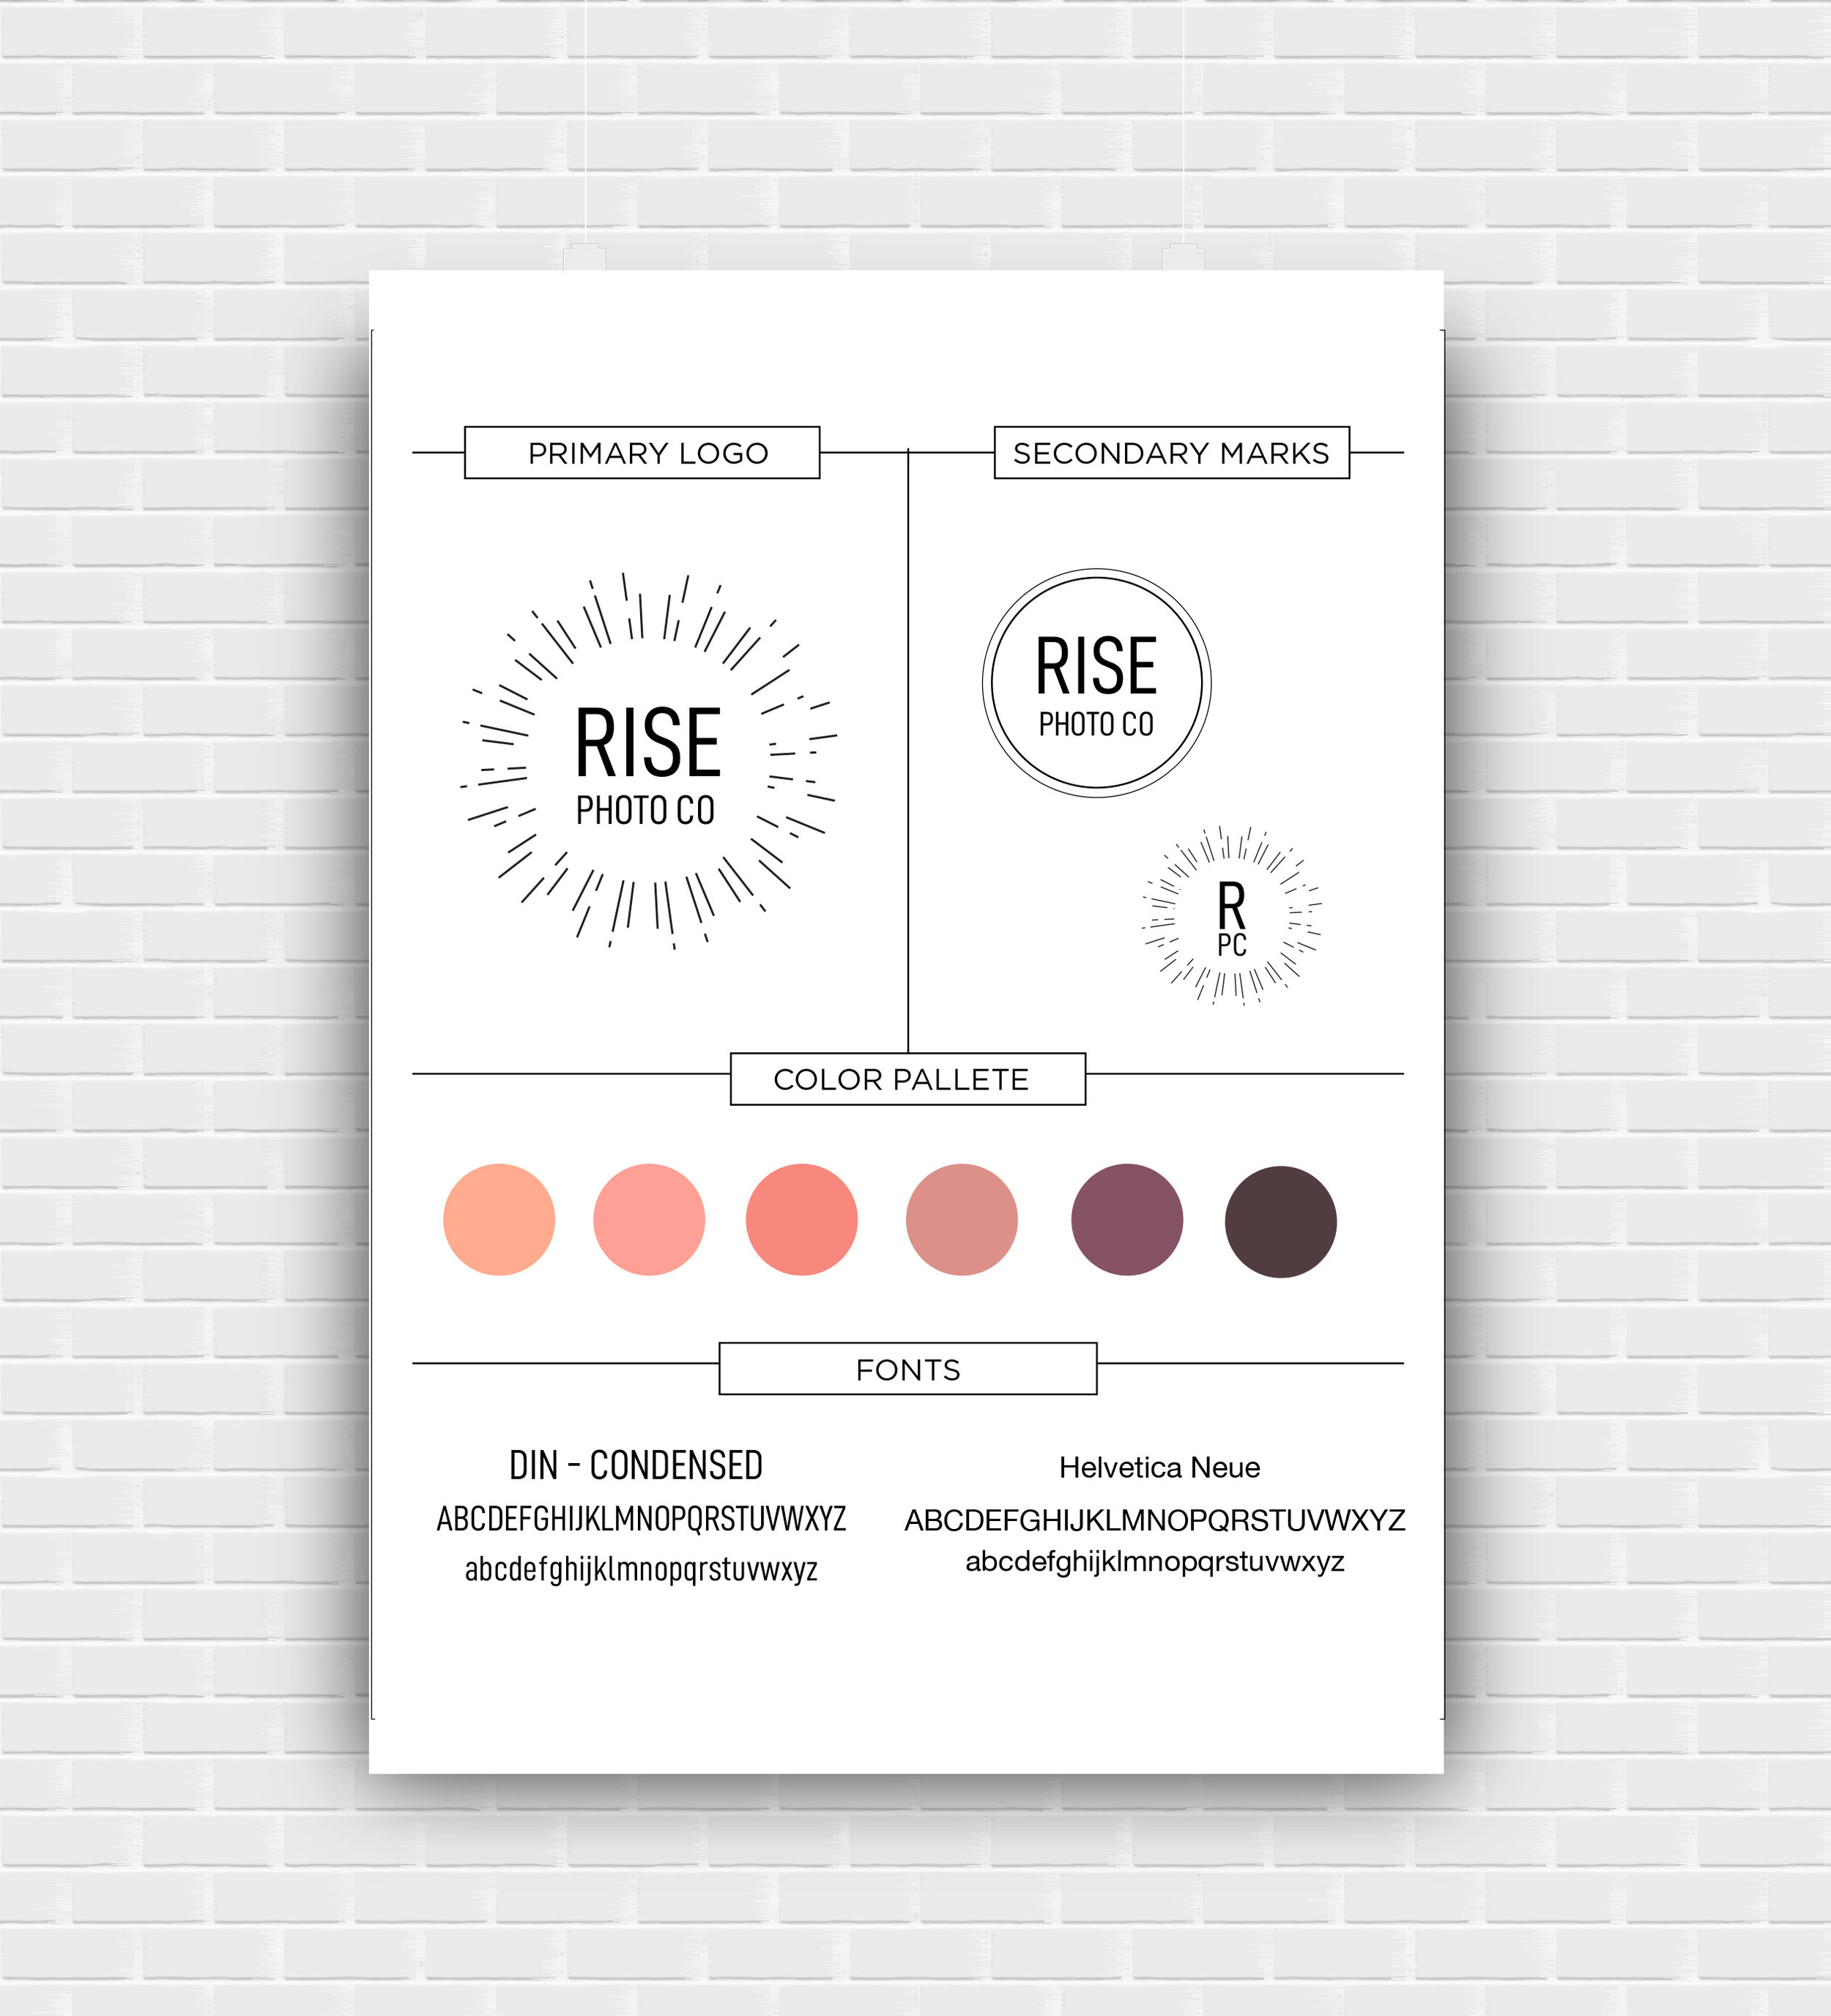 rise style guide mock up.jpg